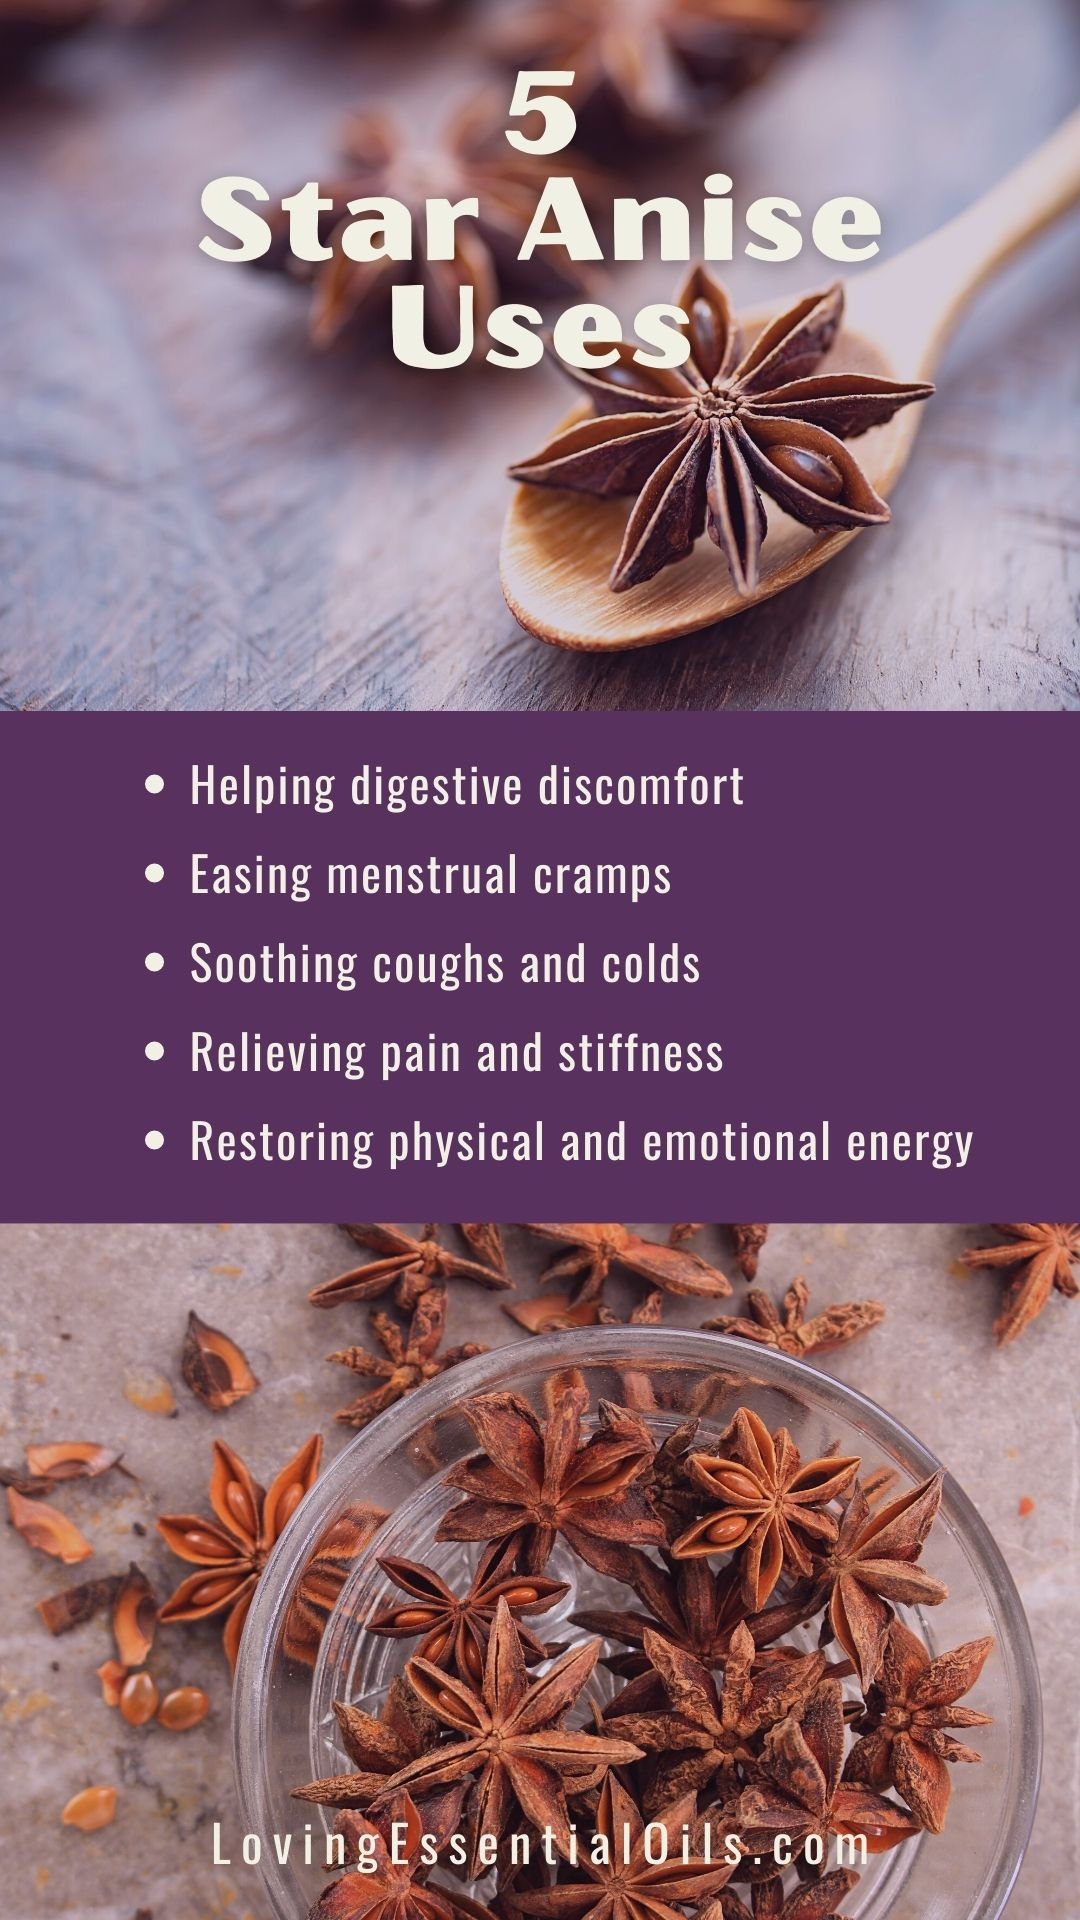 What To Use Instead Of Star Anise